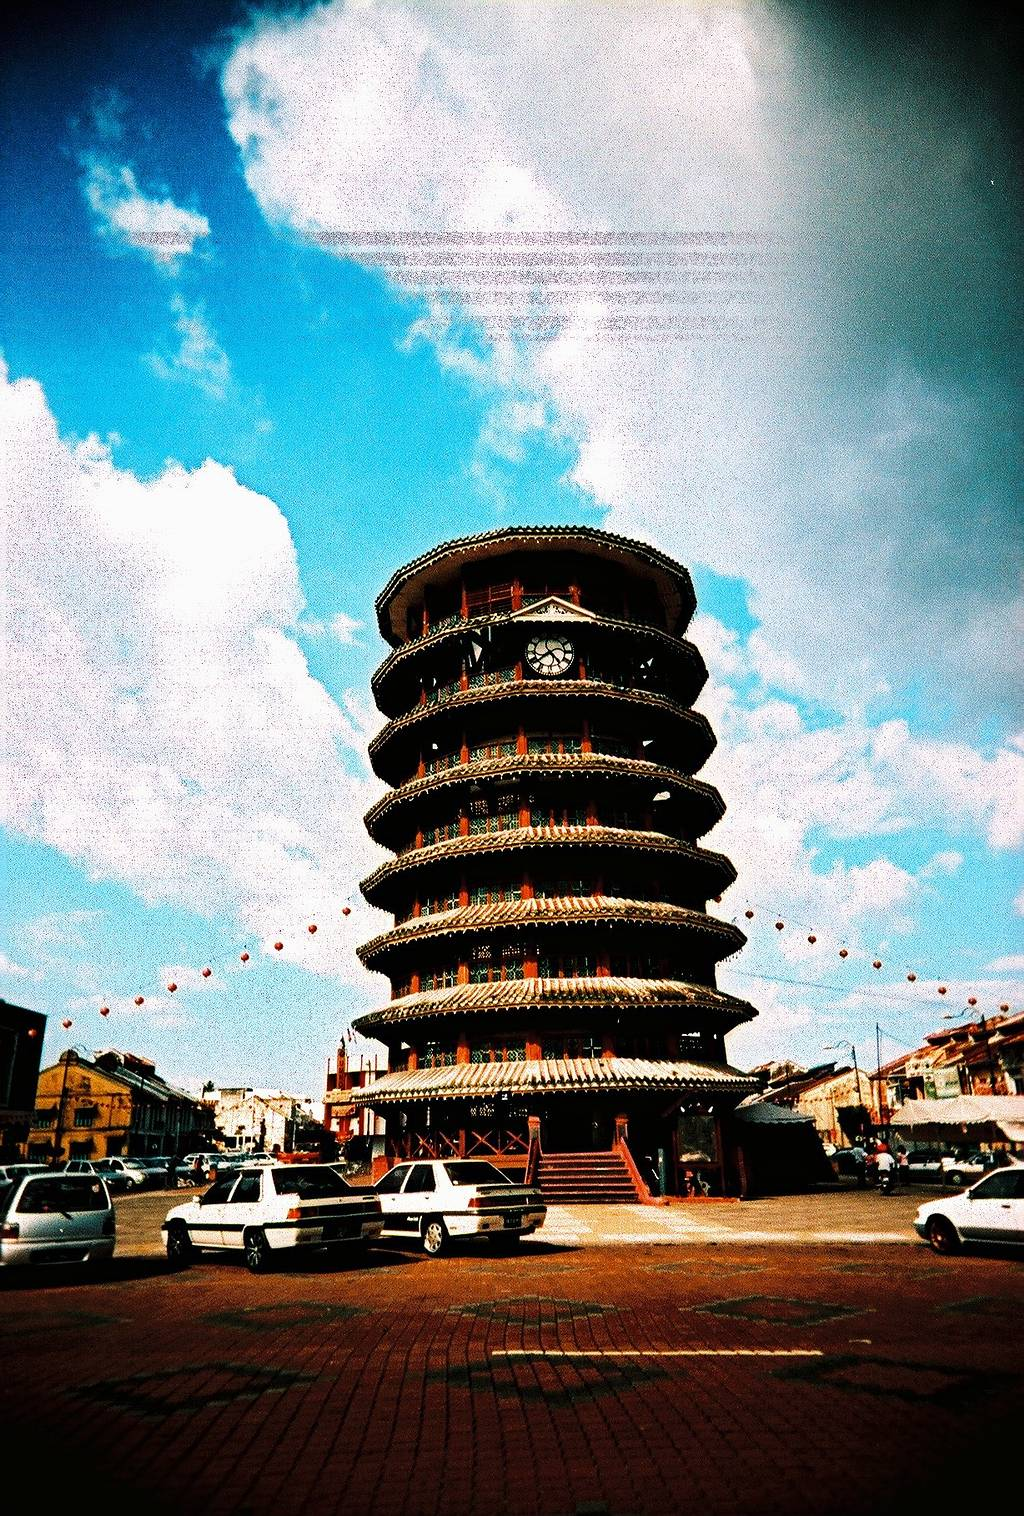 Let's Go Visit the Leaning Tower of Malaysia!